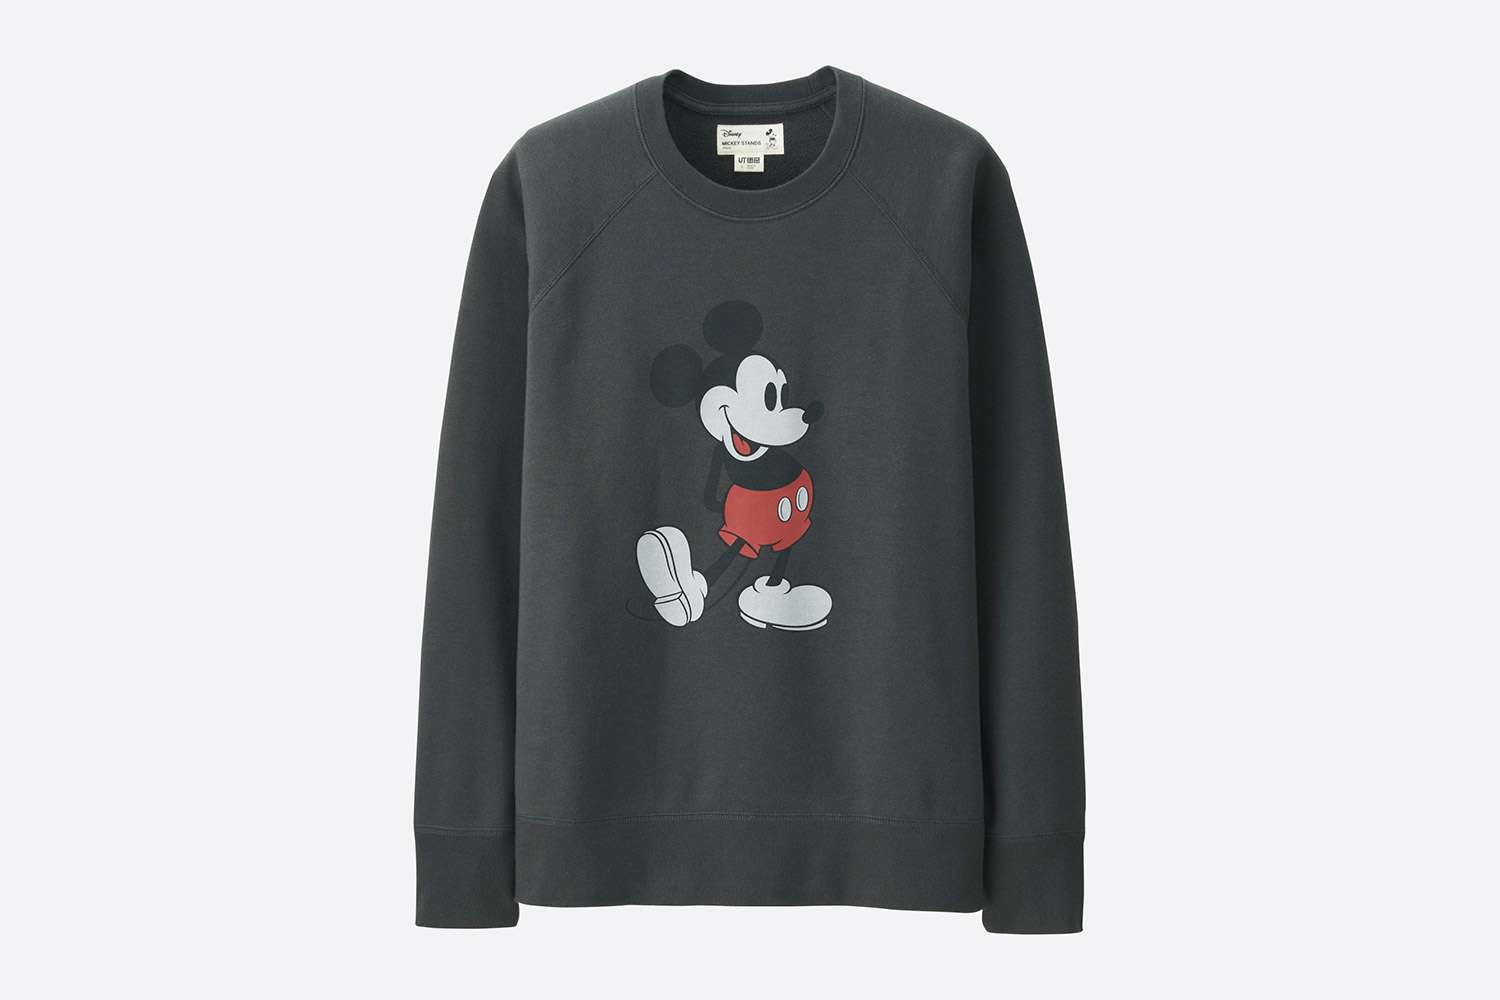 uniqlo-disney-fw17-031